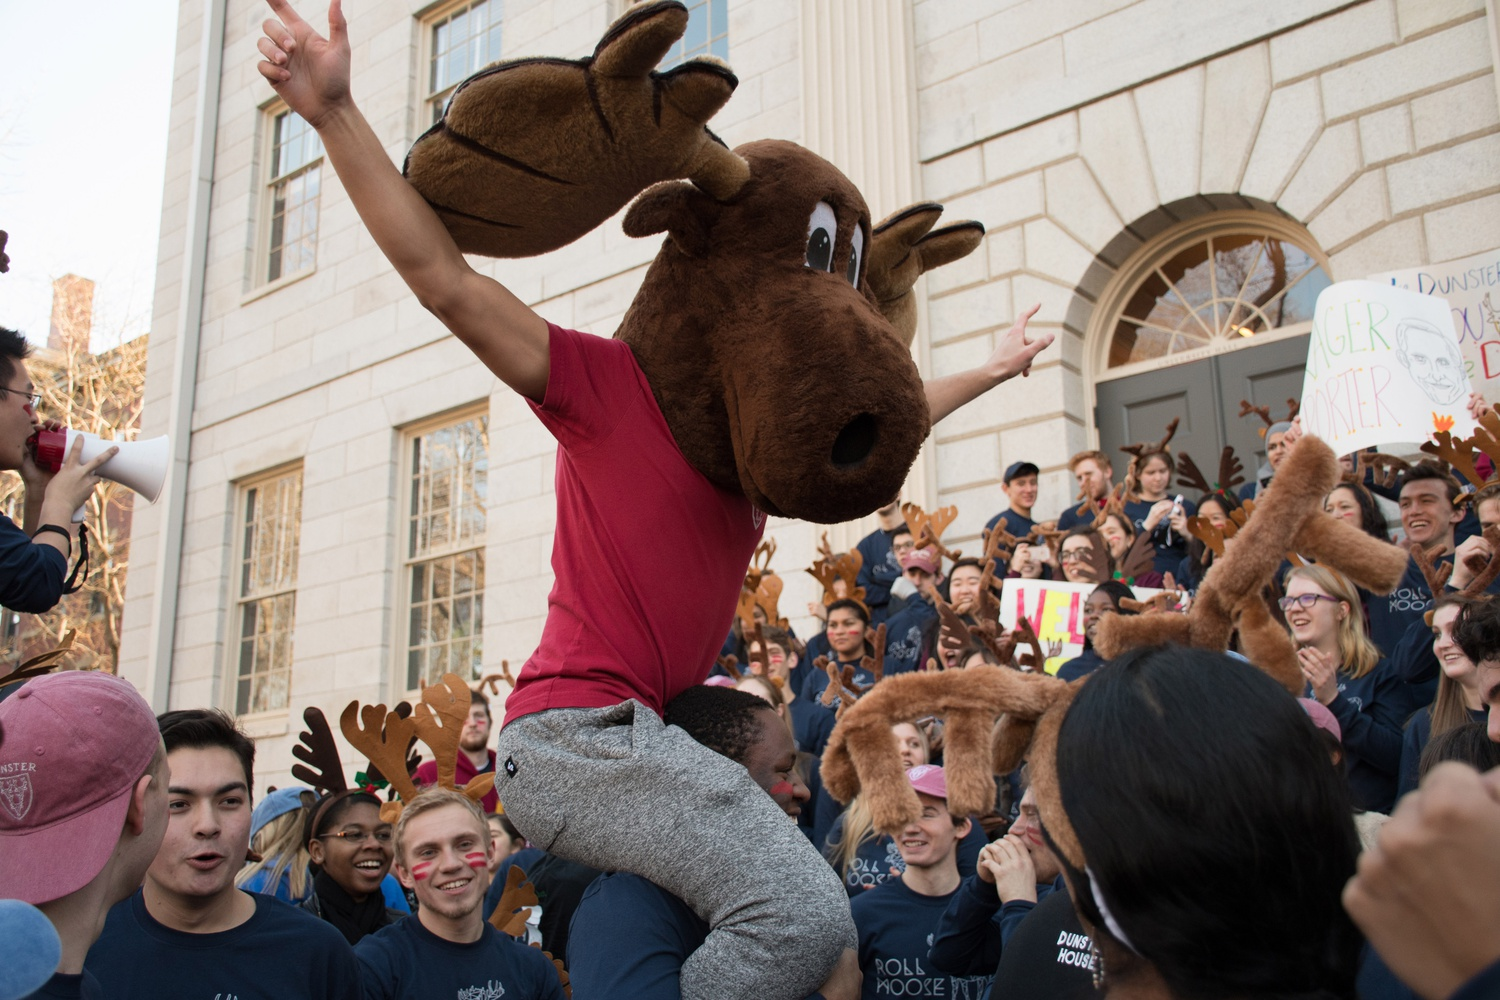 Victor C. Agbafe '19 carries a fellow Dunster resident, dressed as the House mascot - the moose - on his shoulders outside University Hall ahead of delivering housing assignments to freshmen.